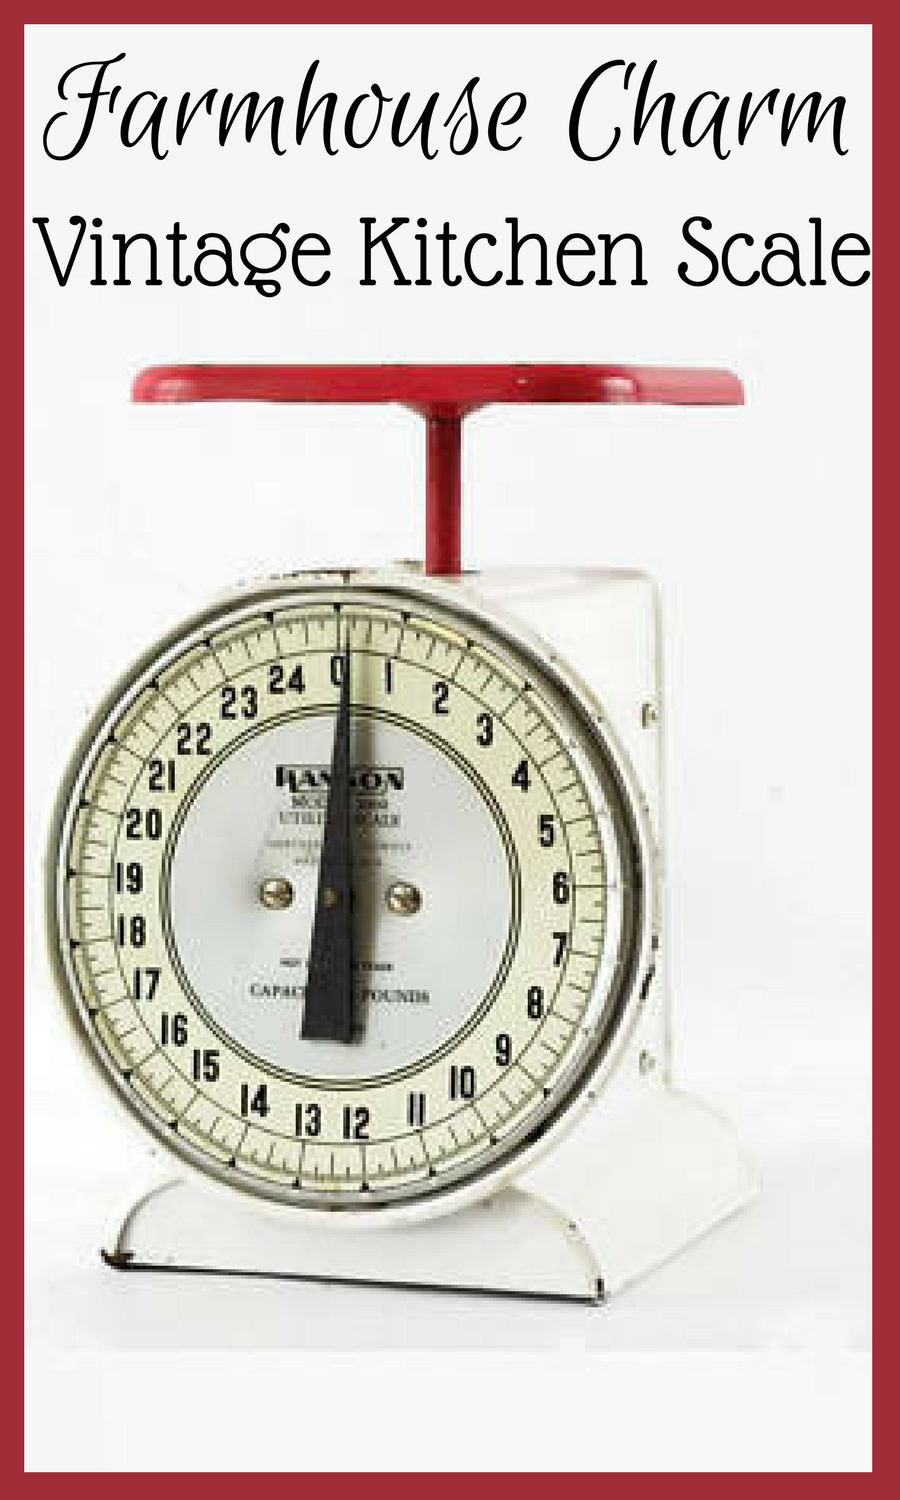 This Vintage Kitchen Scale Has A White Body Red Platform And